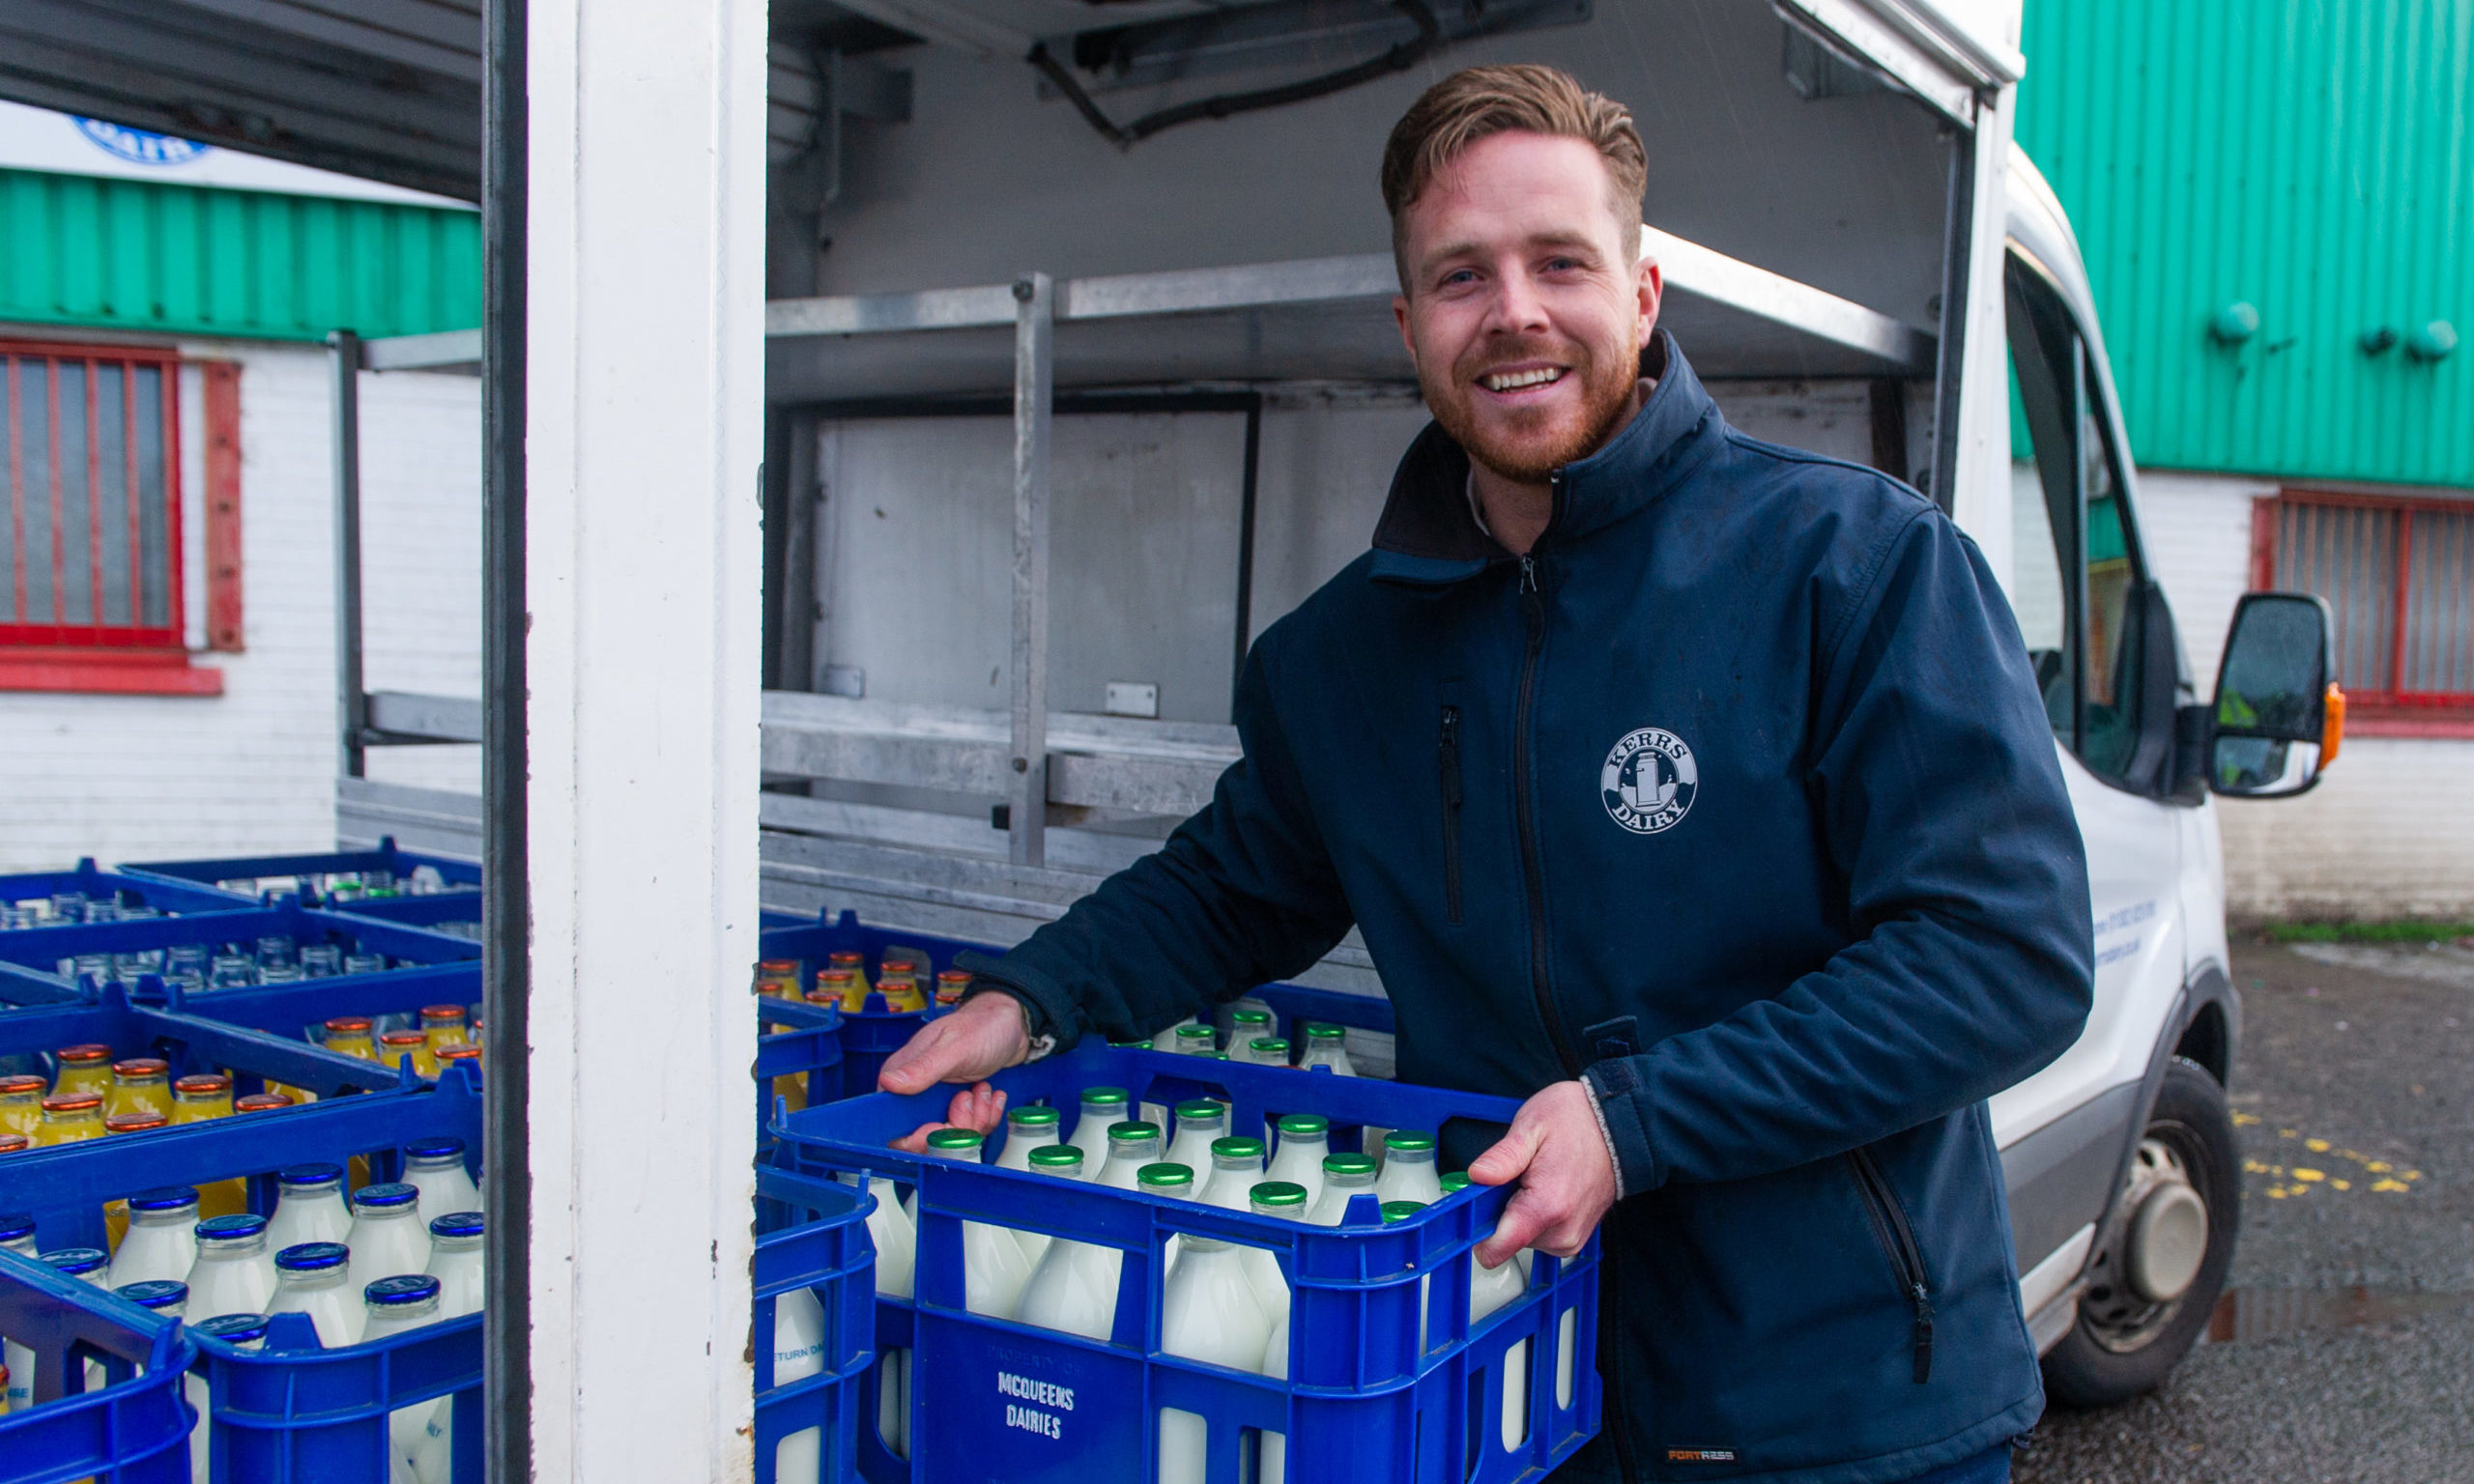 Kelvin Kerr Jnr with a crate of glass milk bottles.